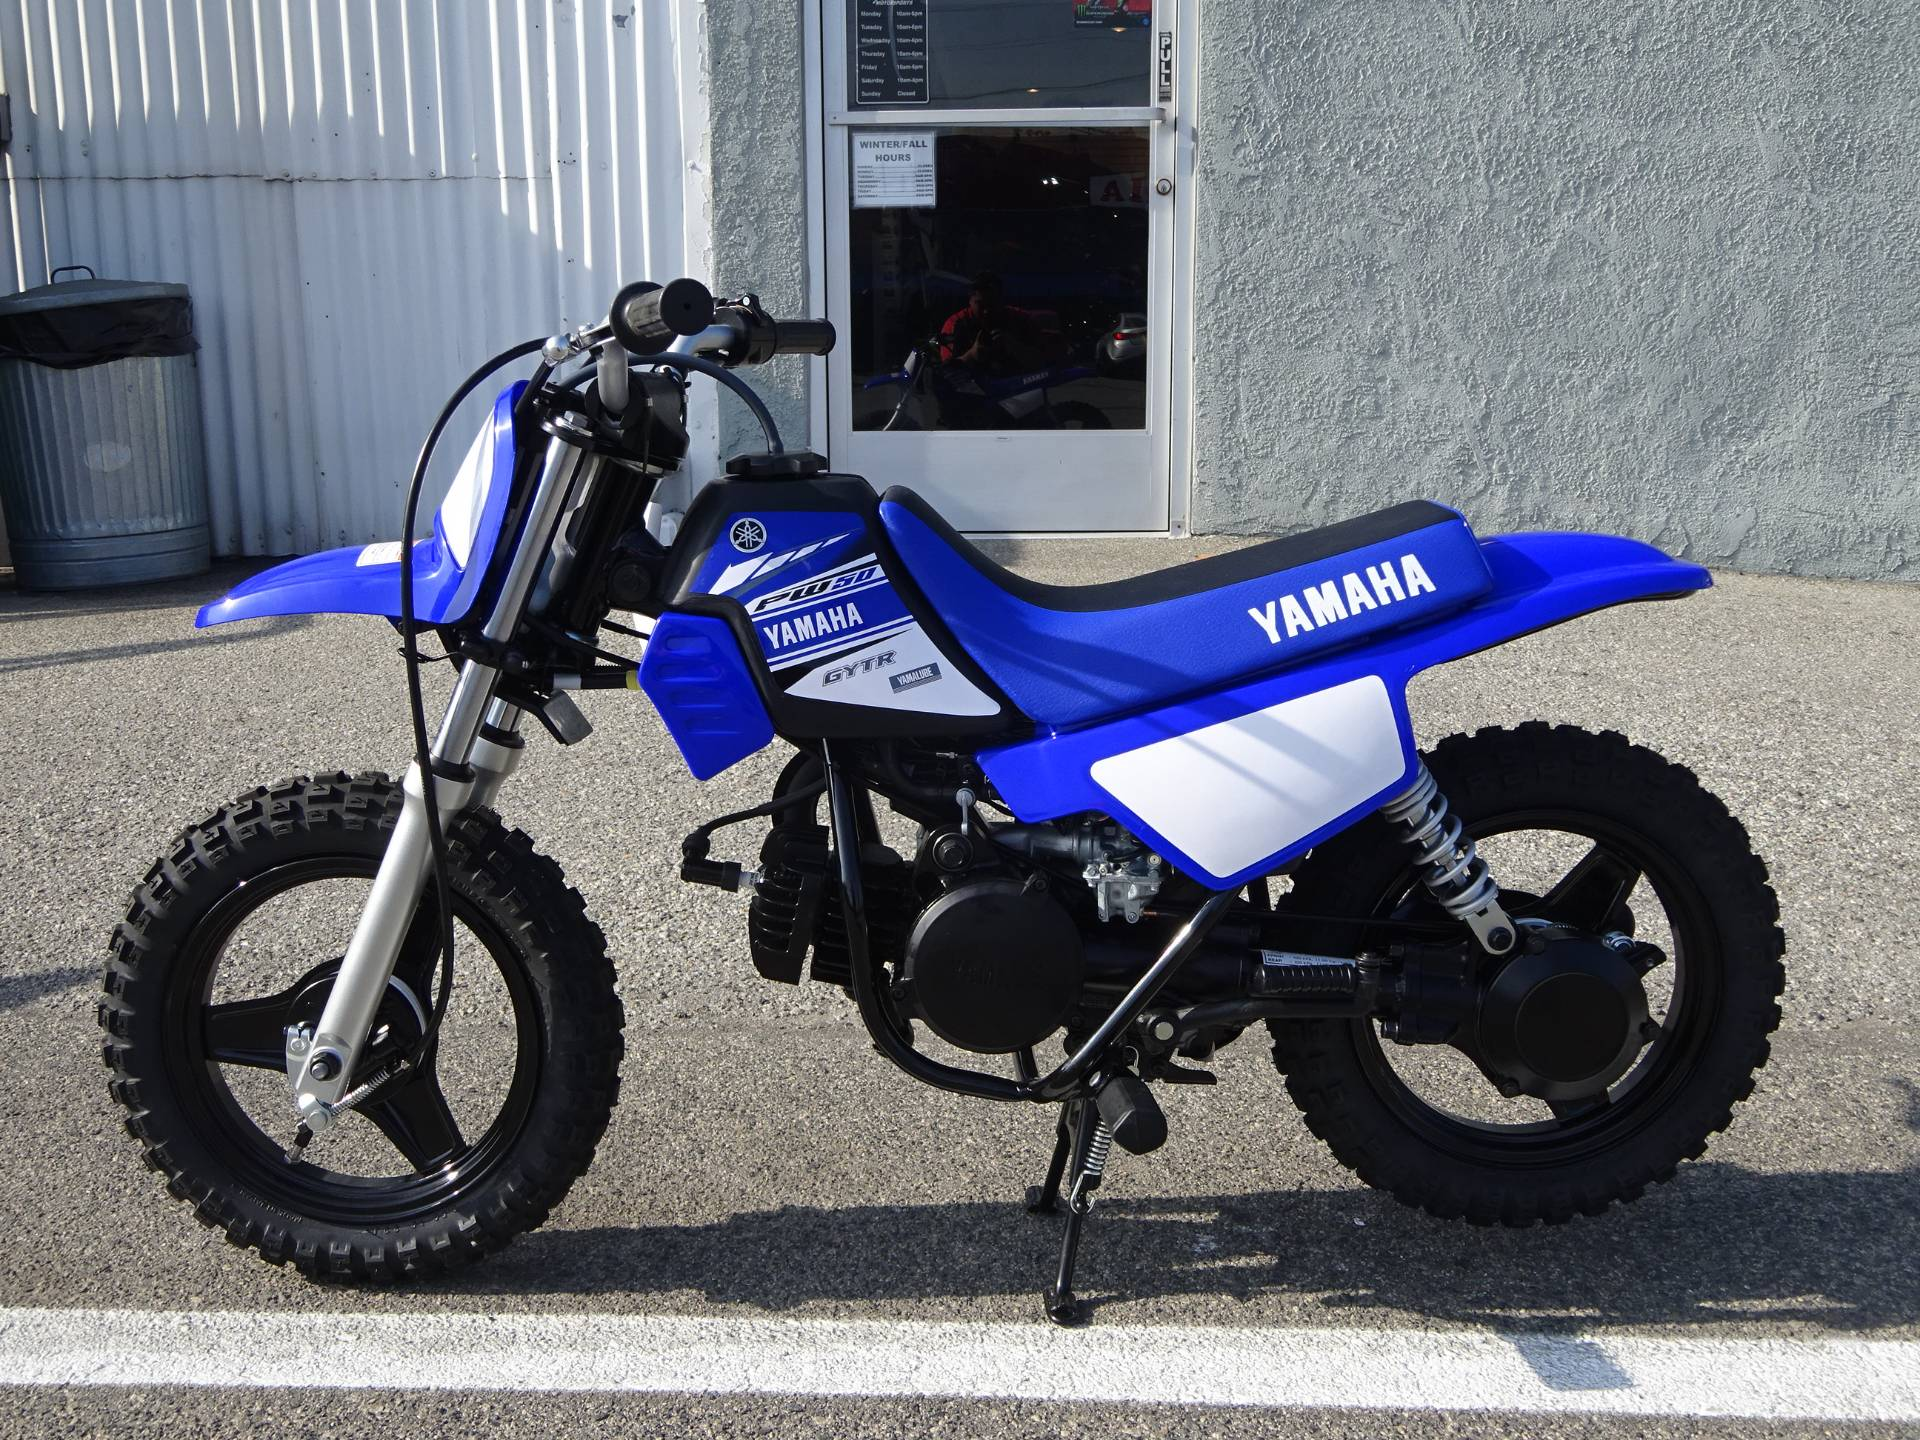 New 2017 yamaha pw50 motorcycles in harbor city ca for Pacific yamaha motorsports